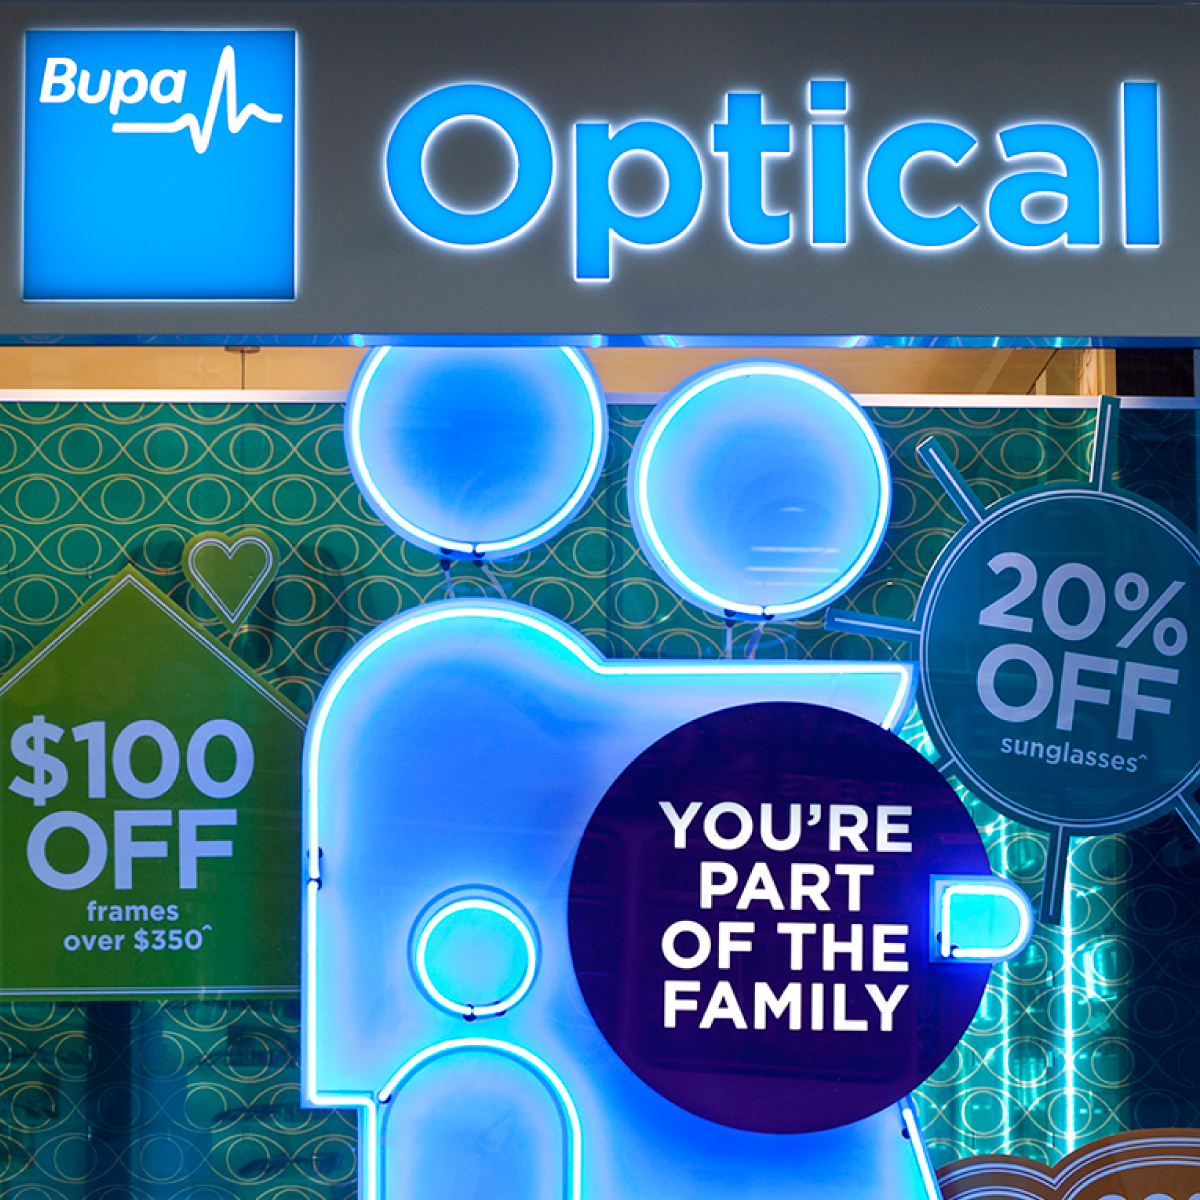 Bupa Optical Exterior Window Display Design